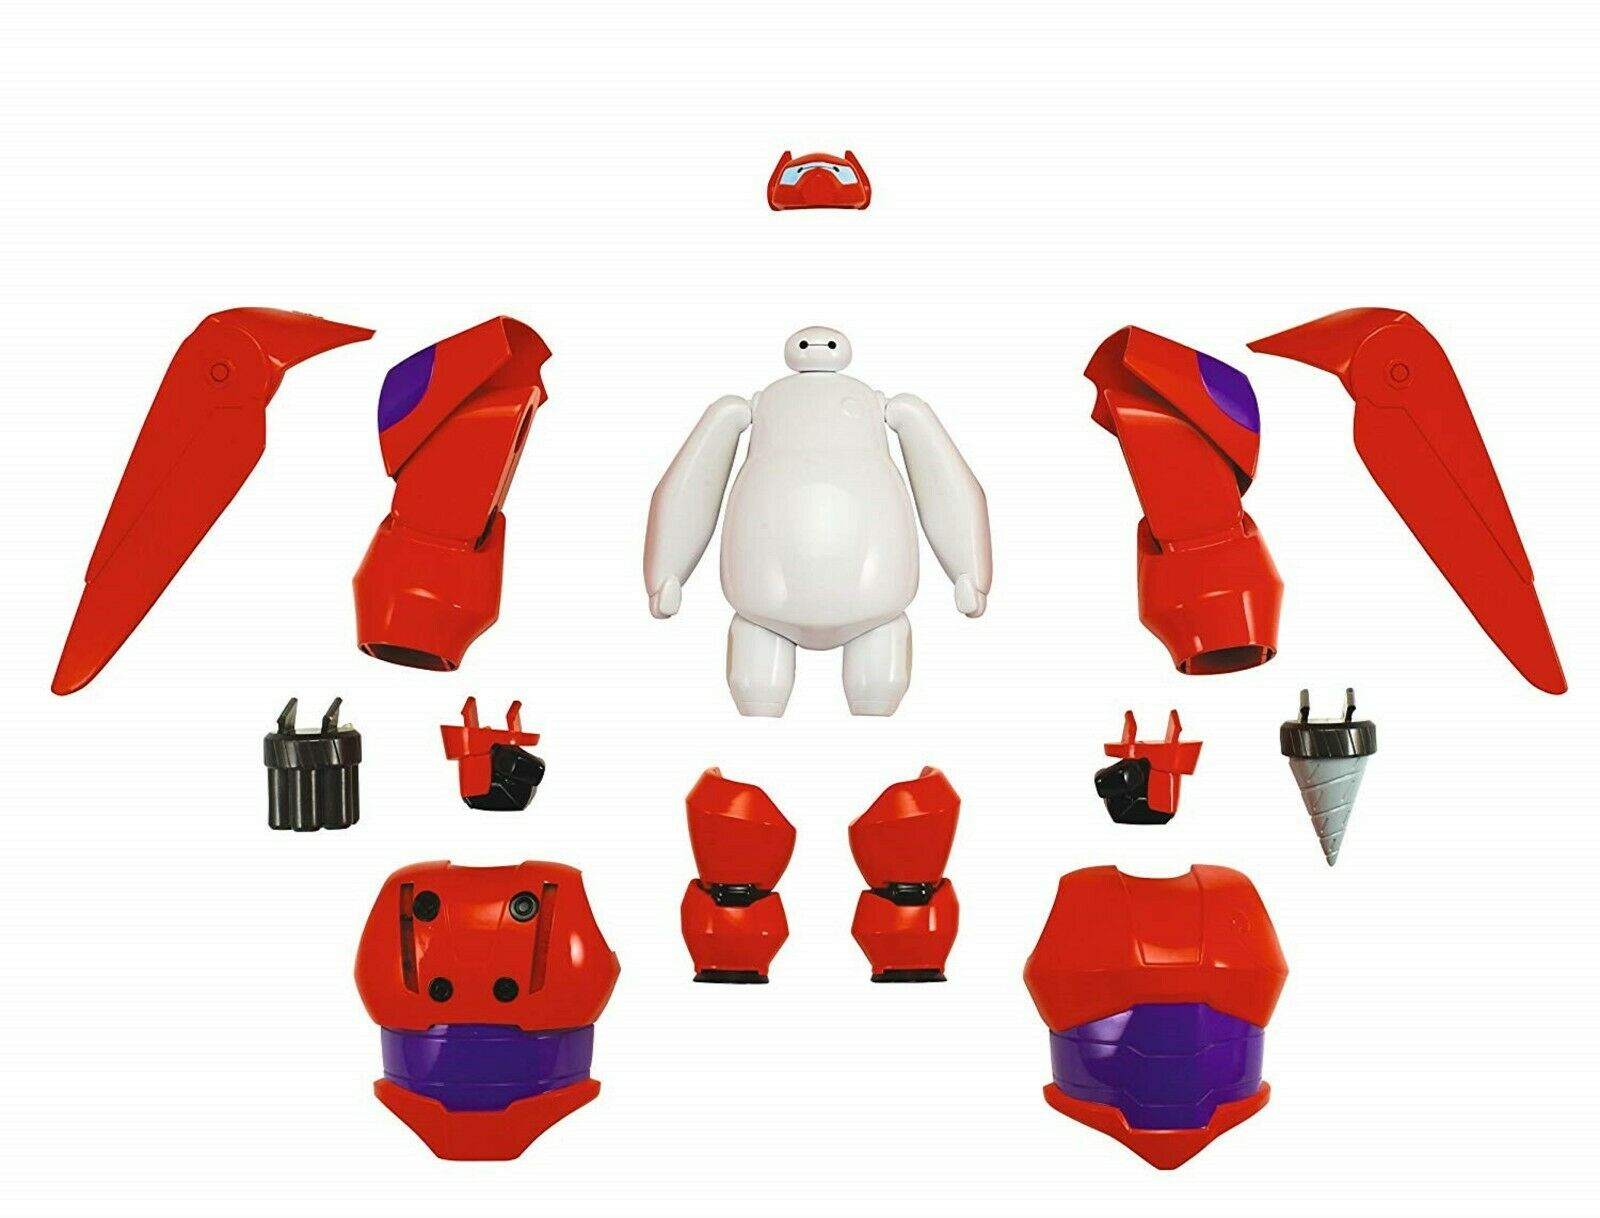 Big Hero 6 Armed Up Baymax Action Figur 4 Lek flygaga Bygg Robot Fight Fun